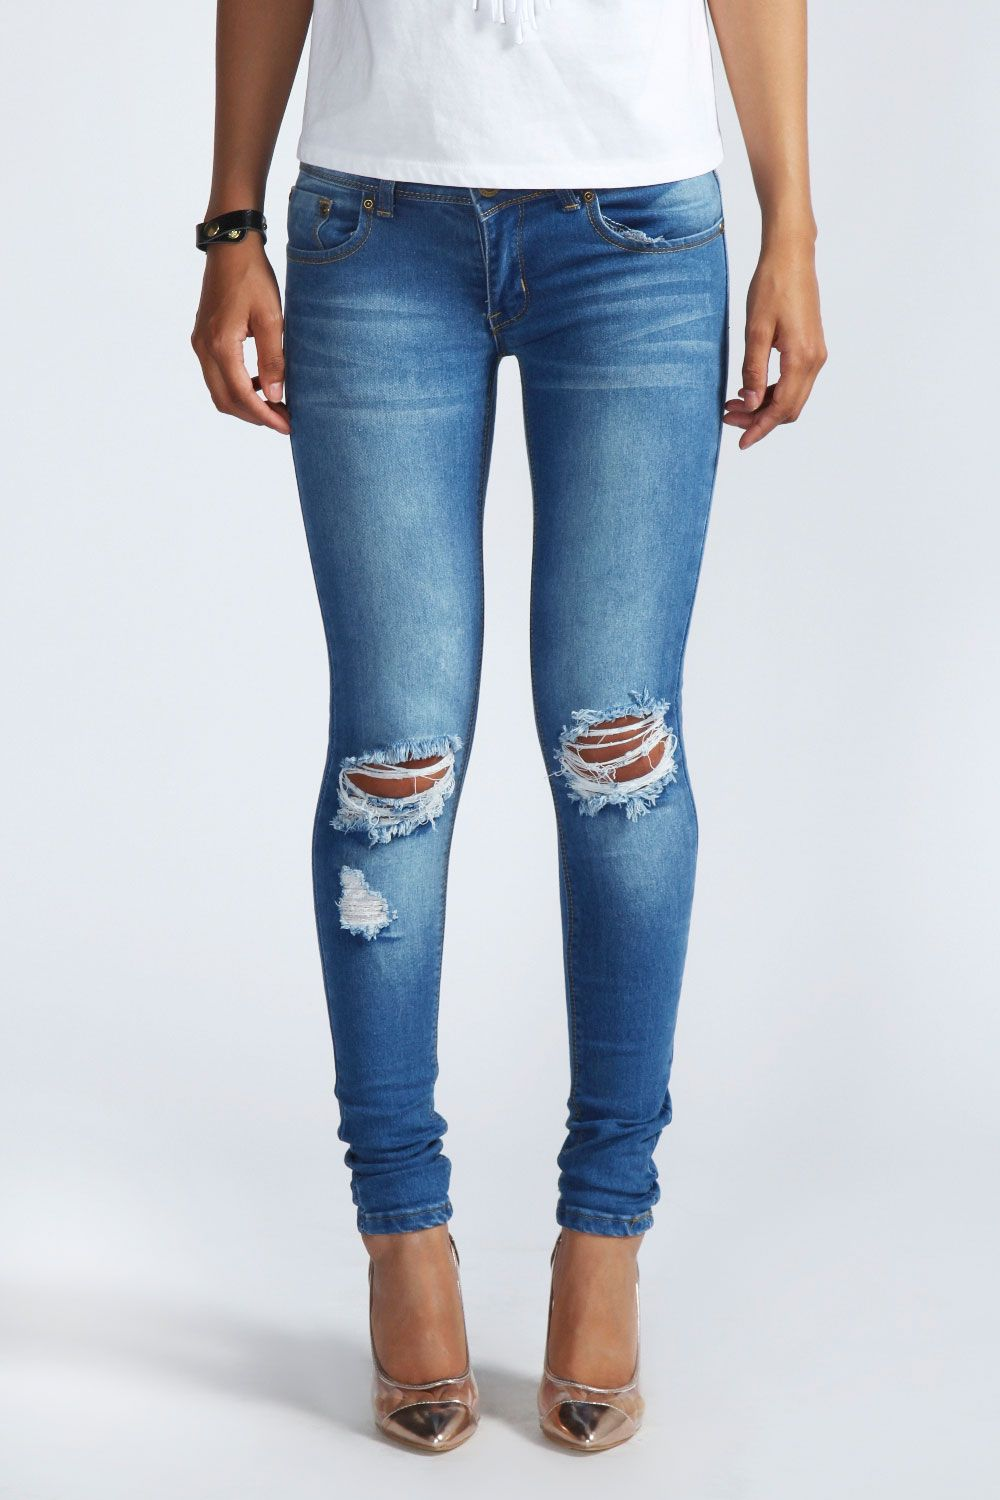 3dd28b78aed217 Mid Rise Distressed Rip Knee Skinny Jeans in 2019 | nigeria | Riped ...